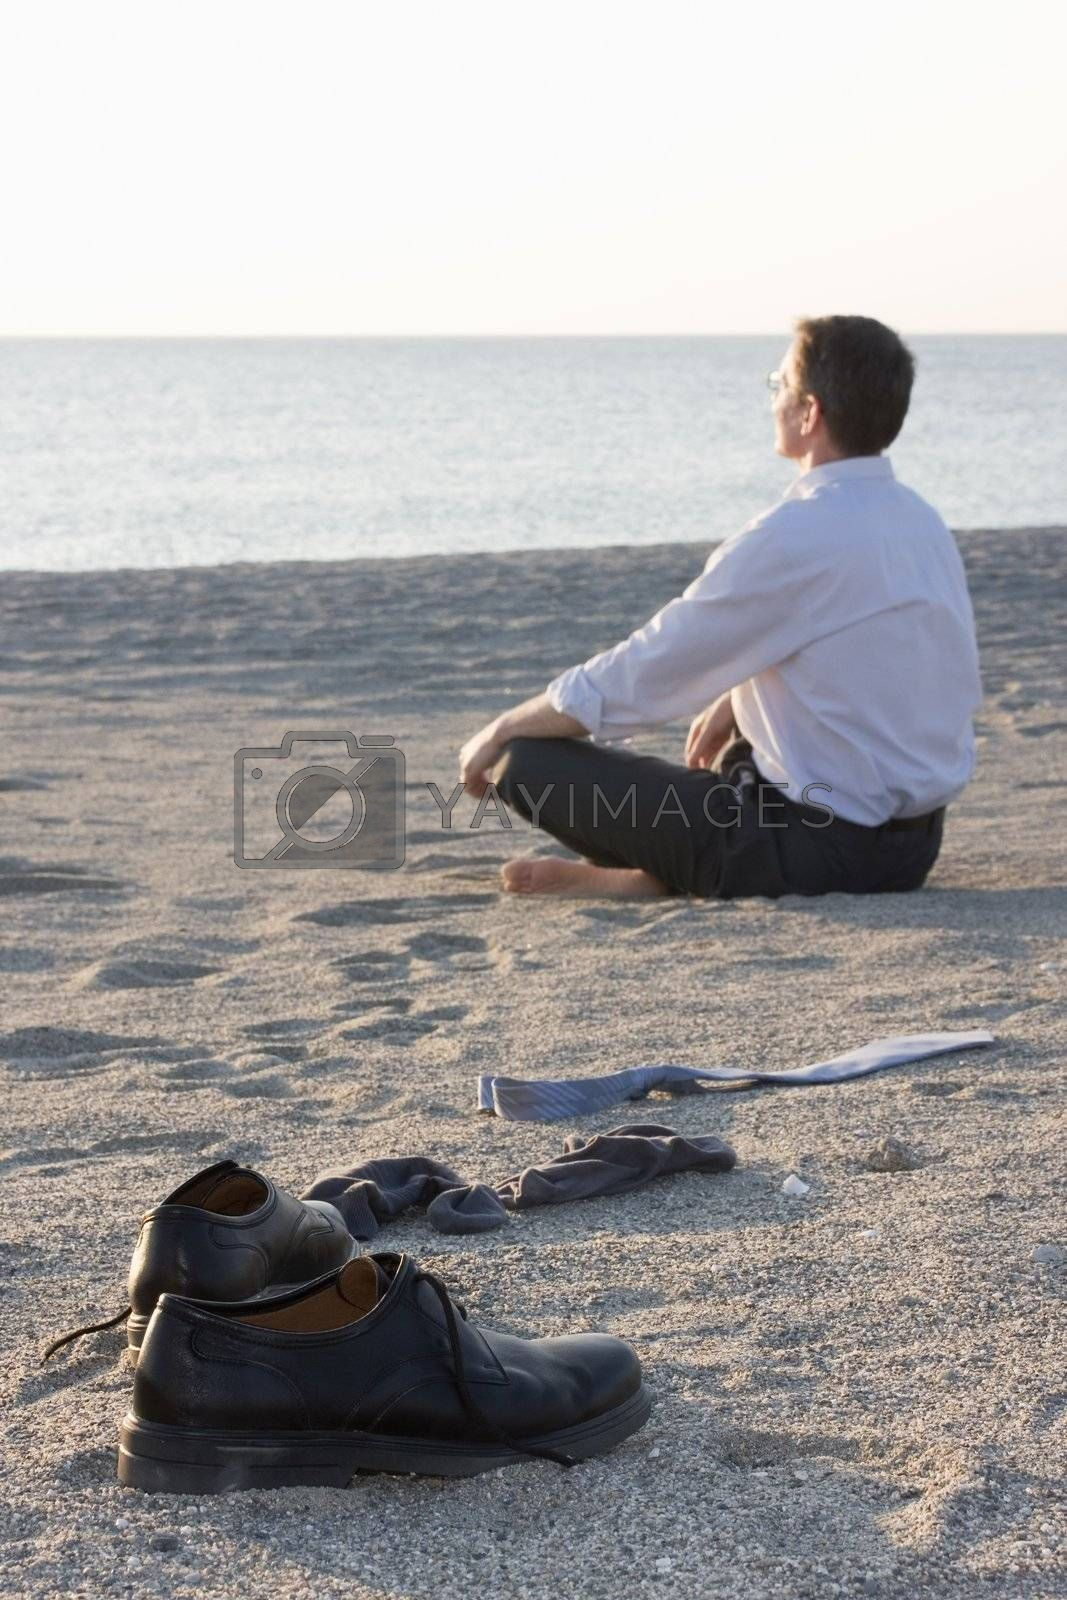 Businessman relaxing on beach - Focus on the shoes in the foreground